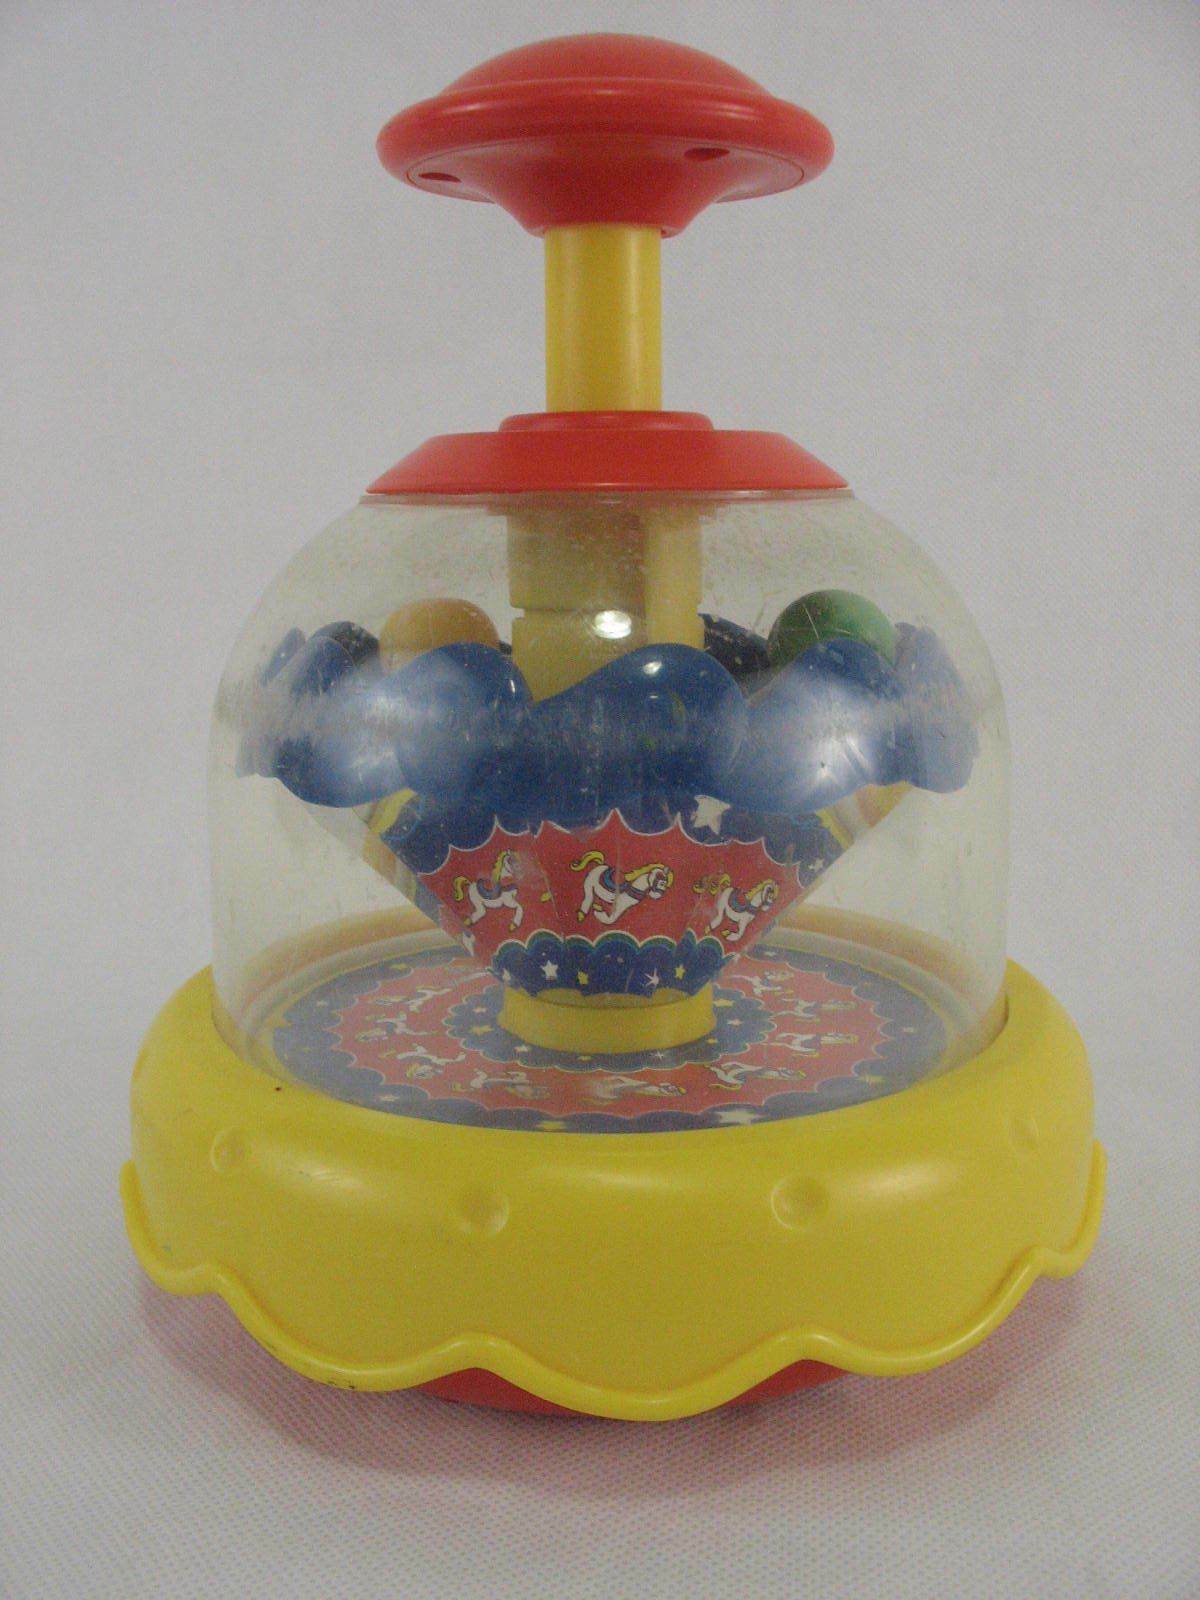 Primary image for Blue Box Vintage Toddler Push Top Spin Toy Circus Carousel Horse